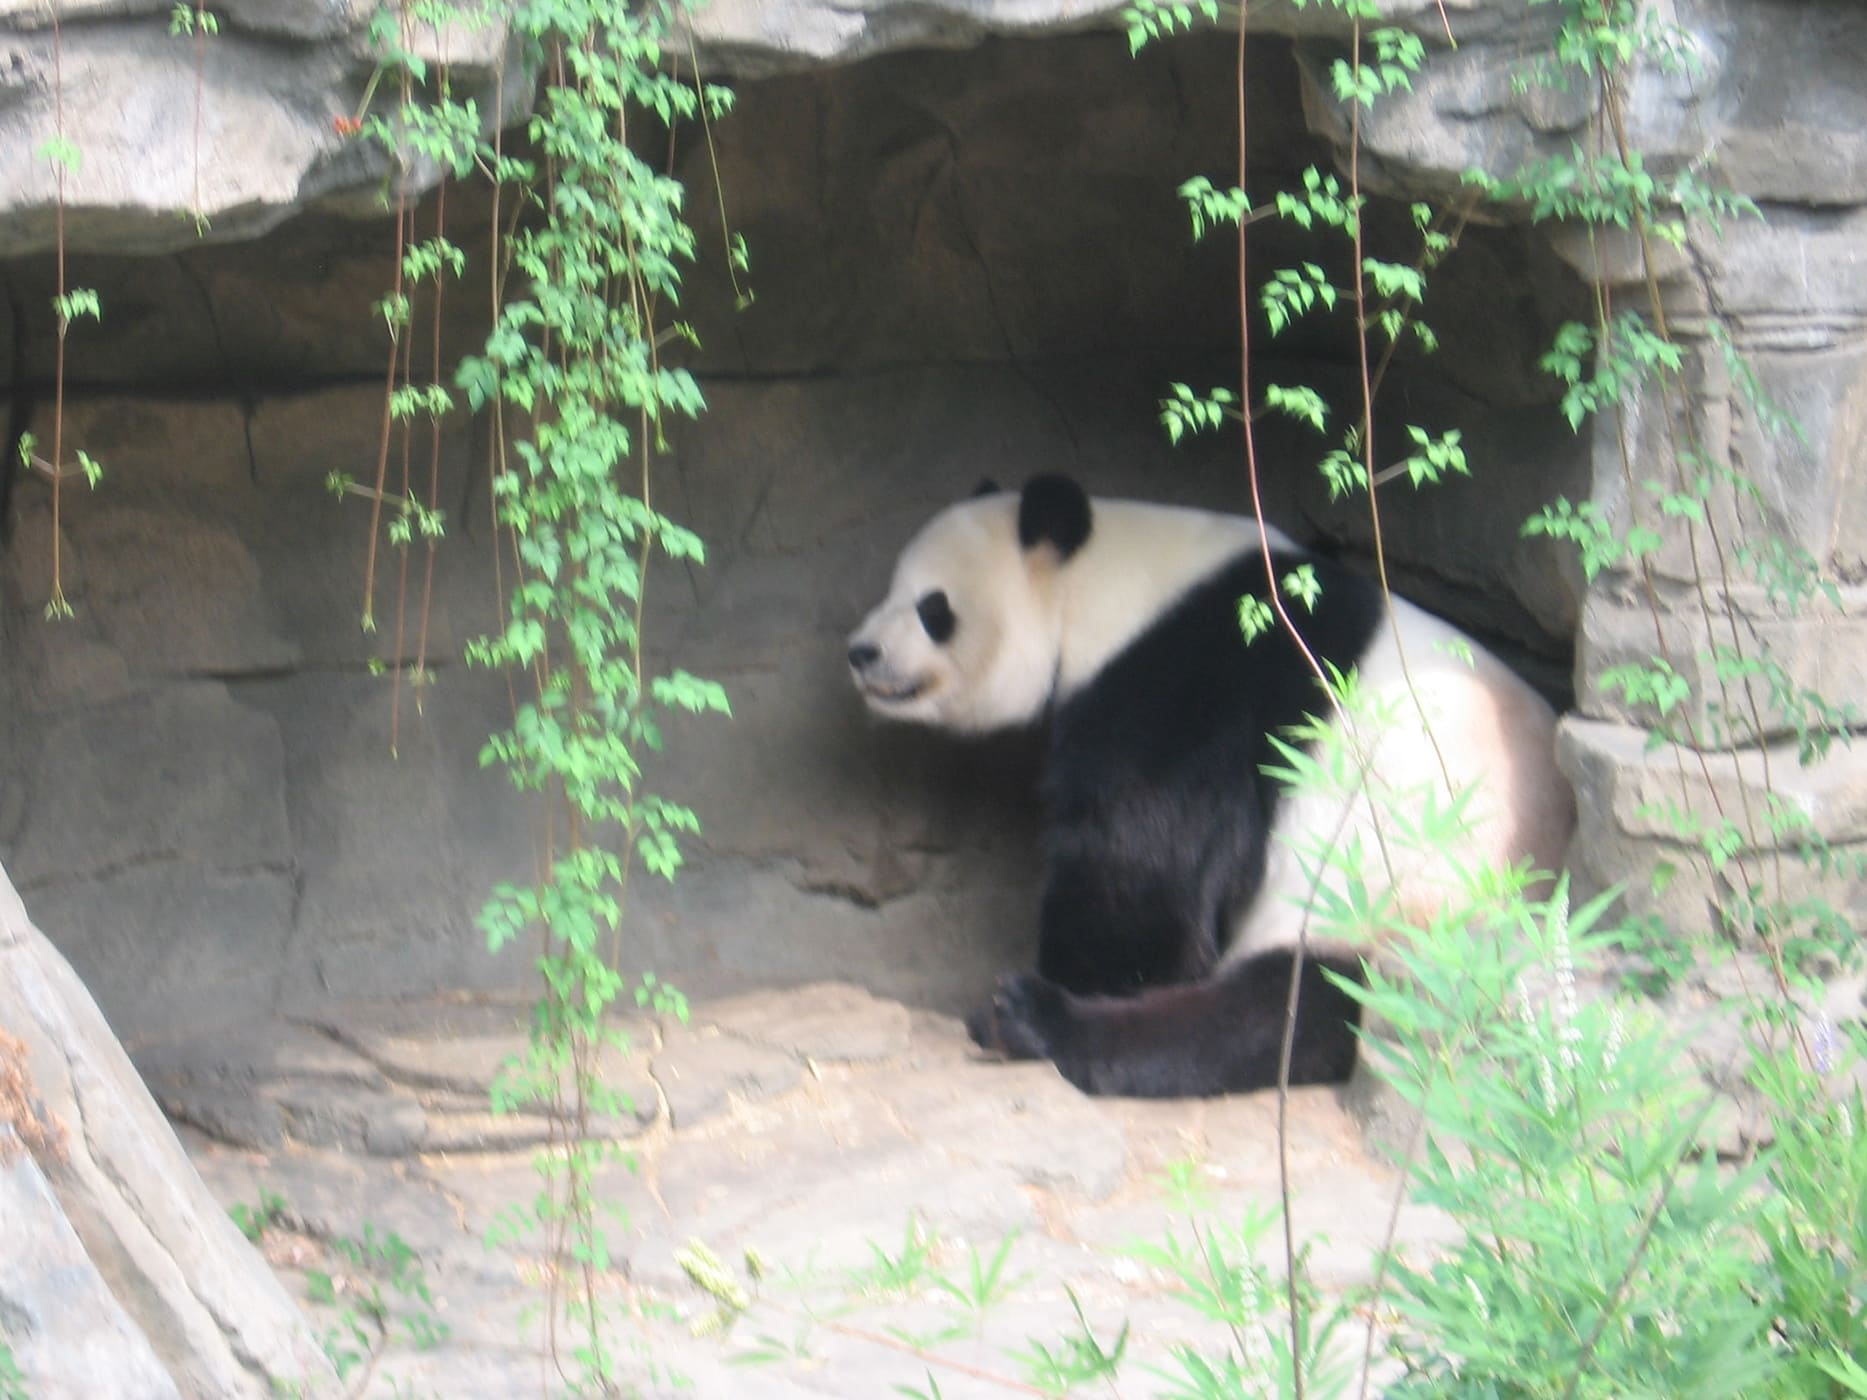 Panda in Washington D.C.